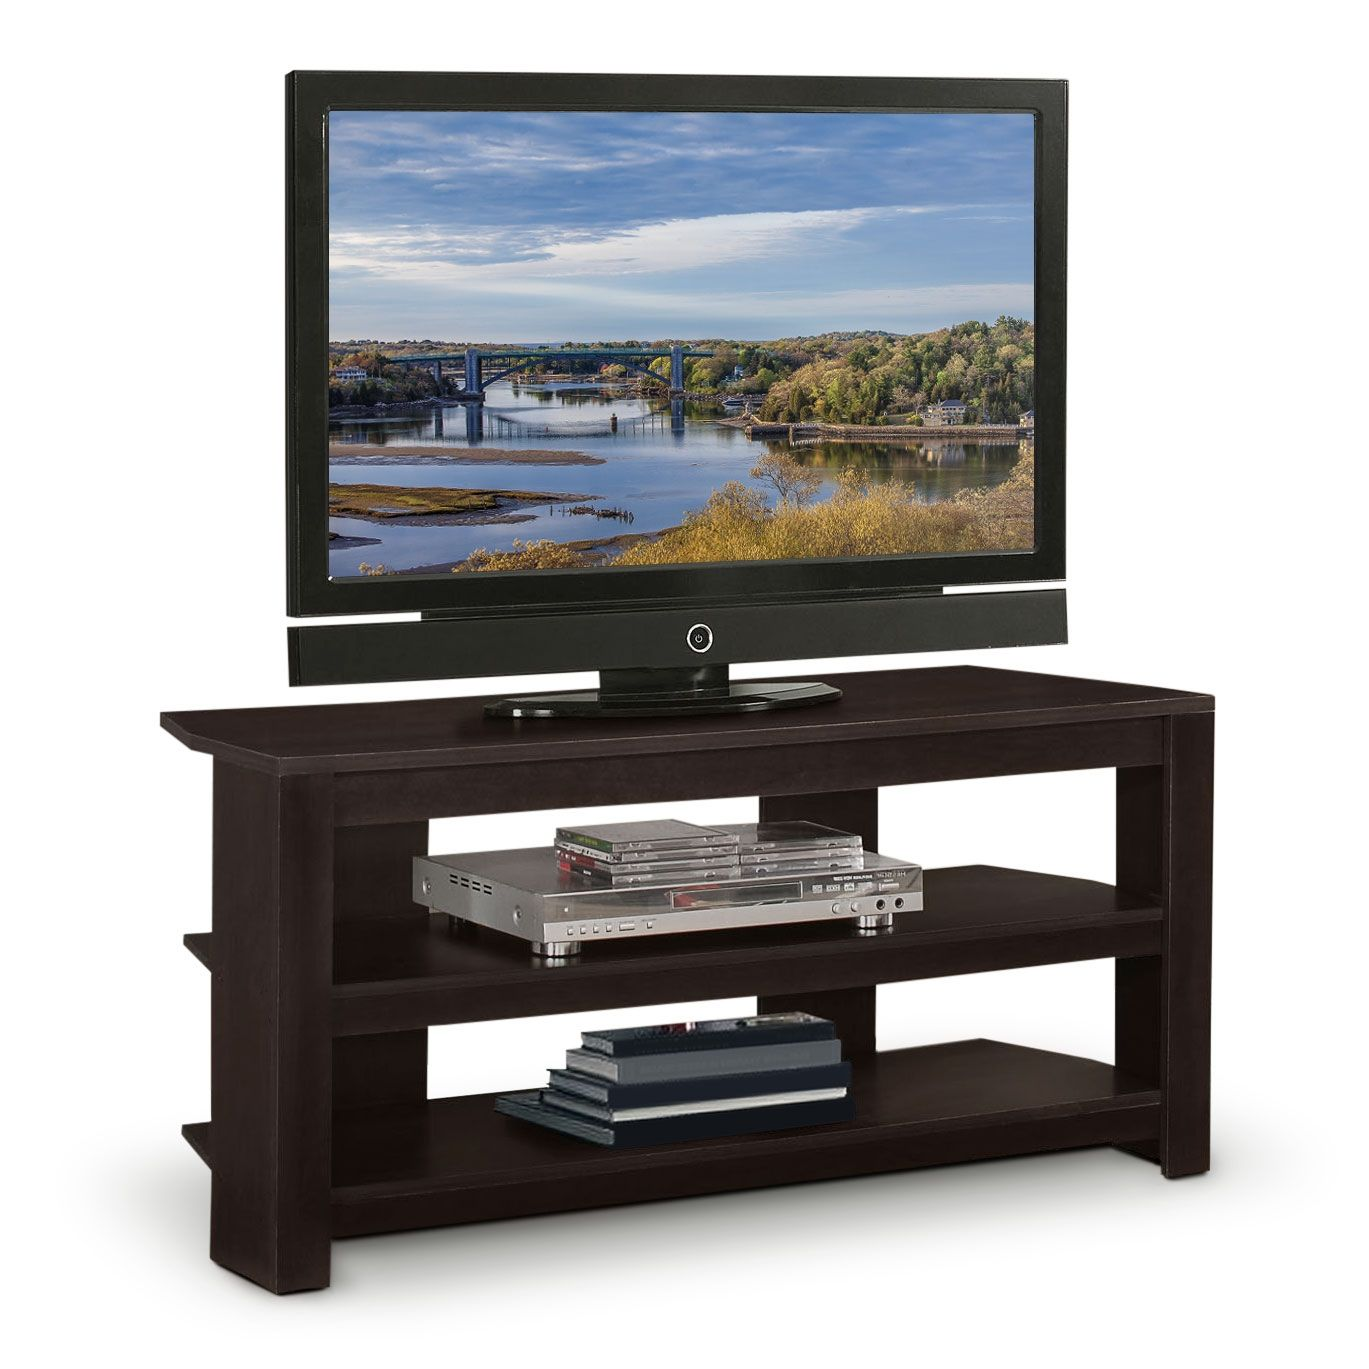 99 42 Leon S Online Only Rowan Tv Stand Entertainment